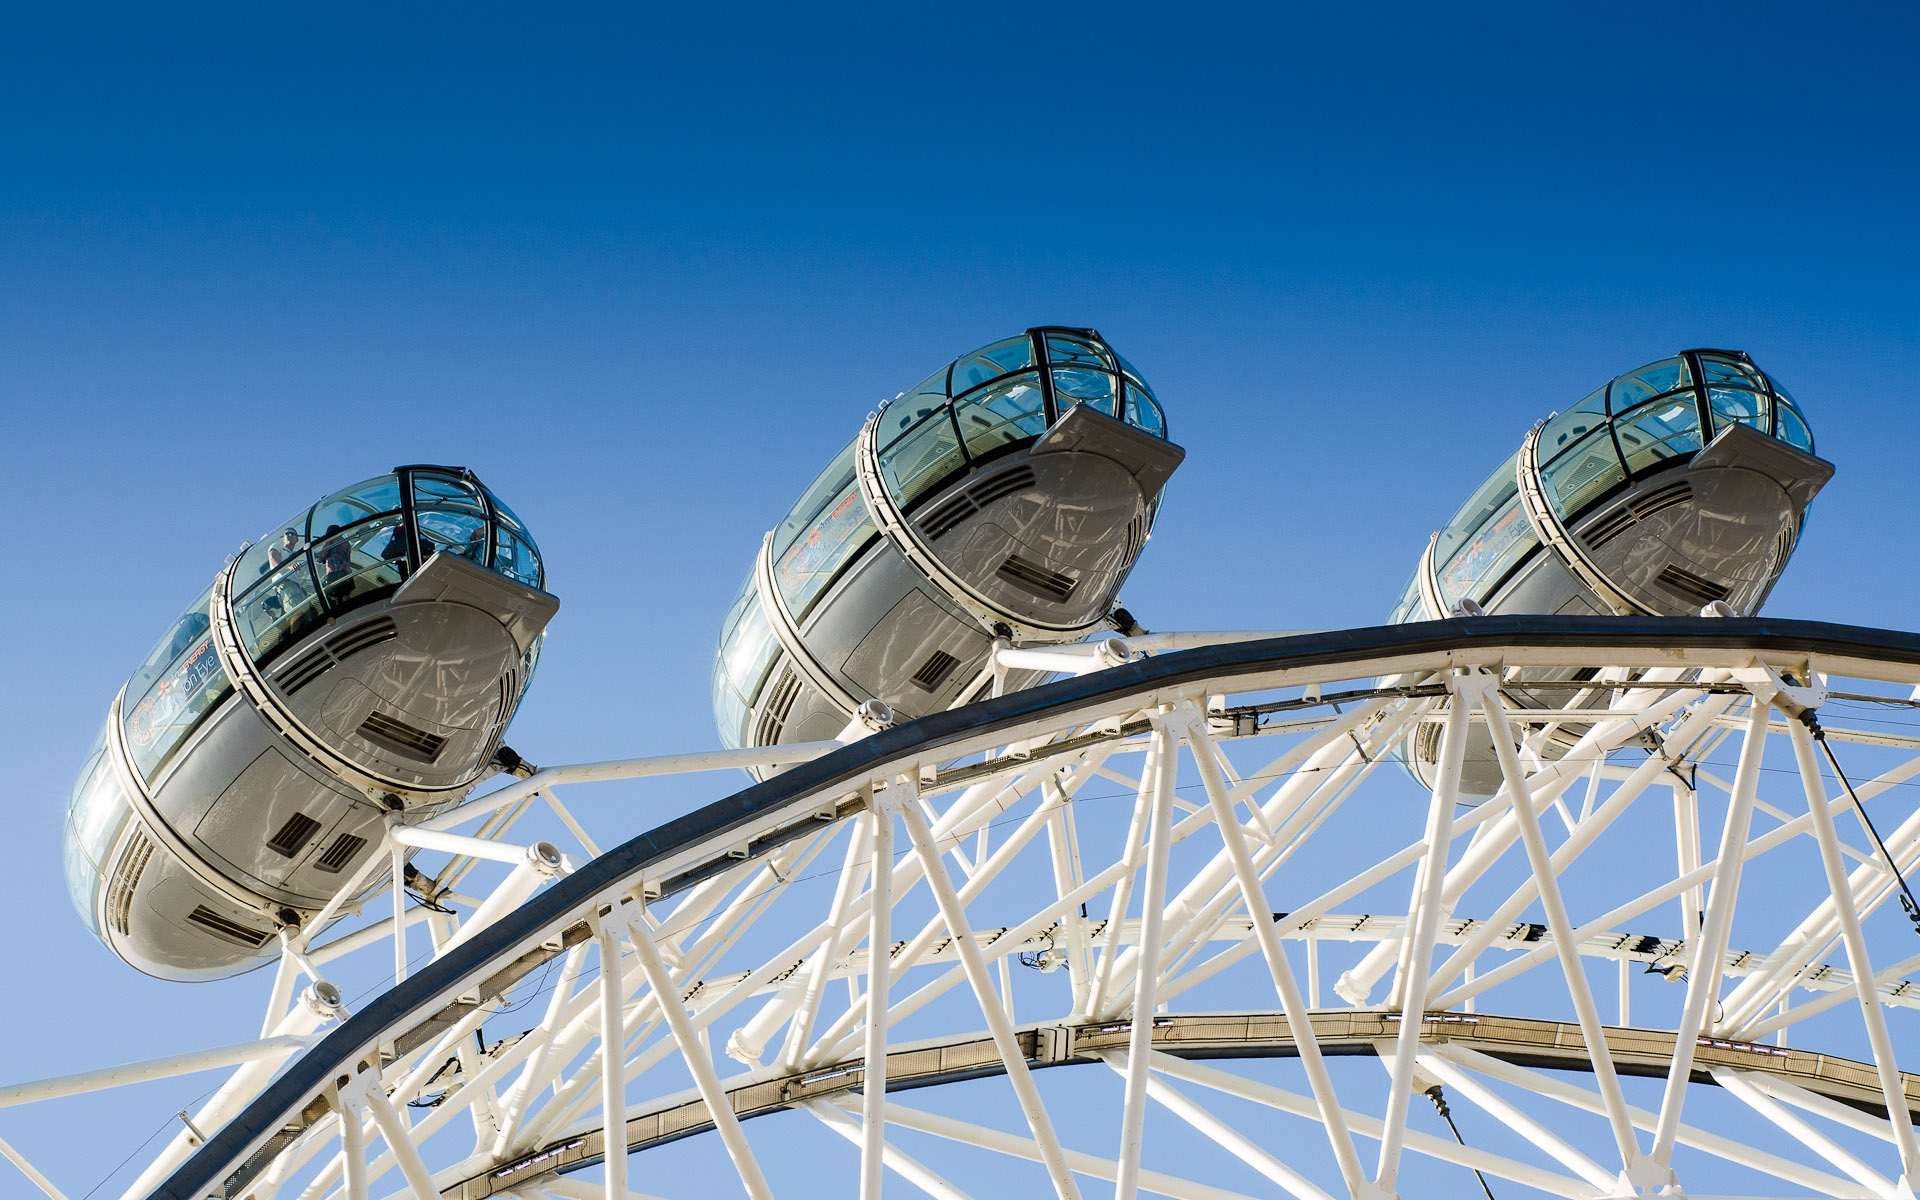 3 pods of the London Eye